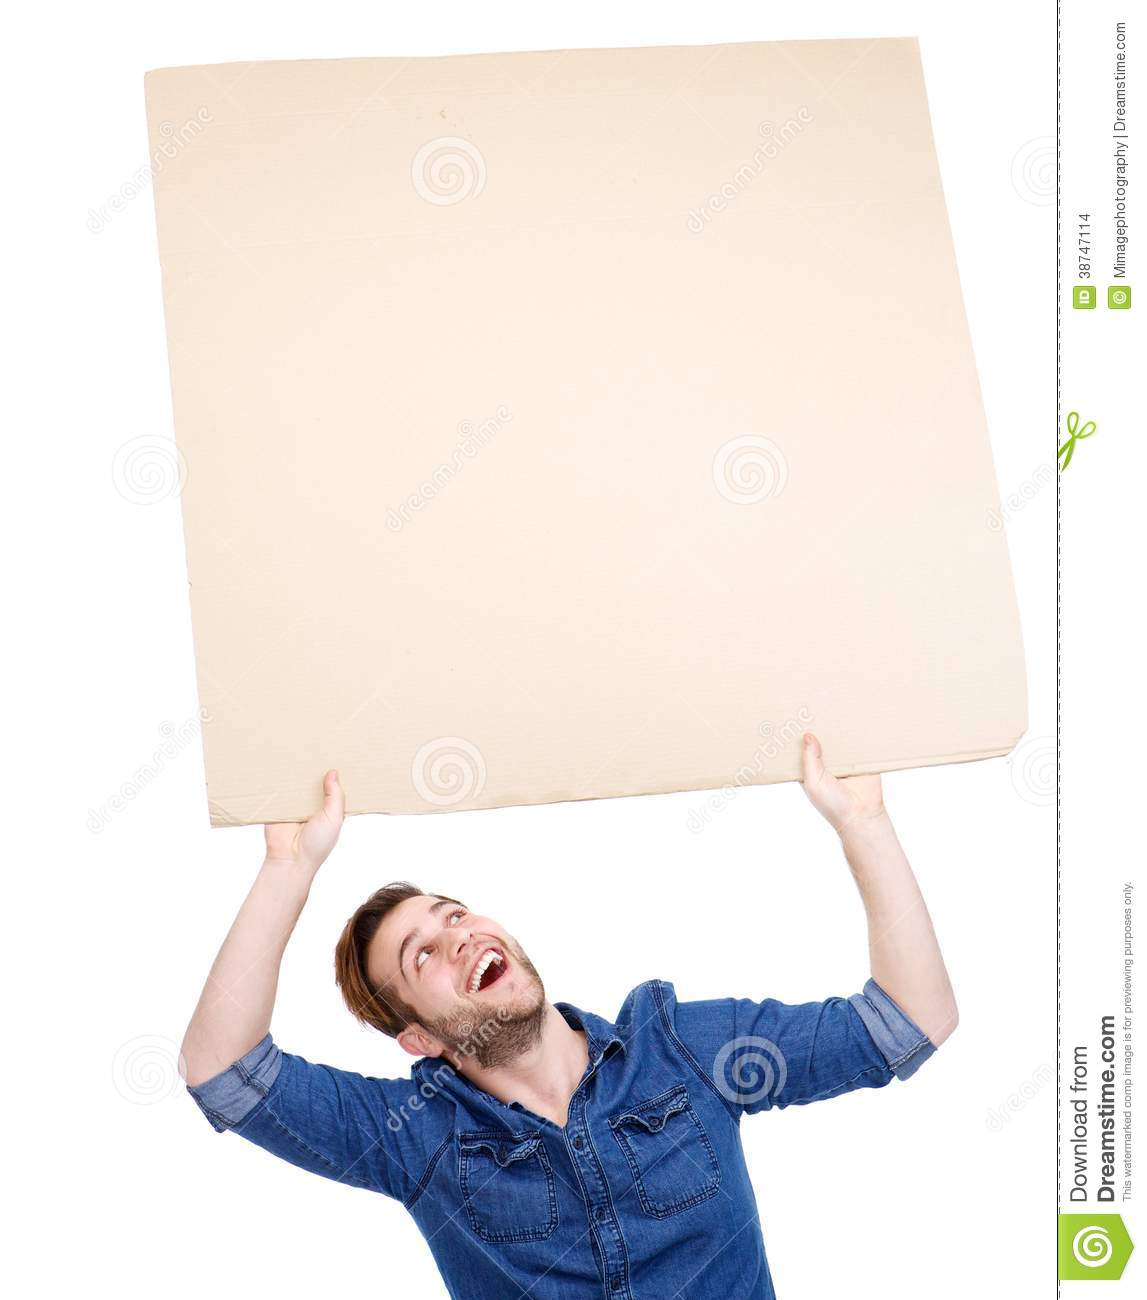 Man holding blank poster sign up